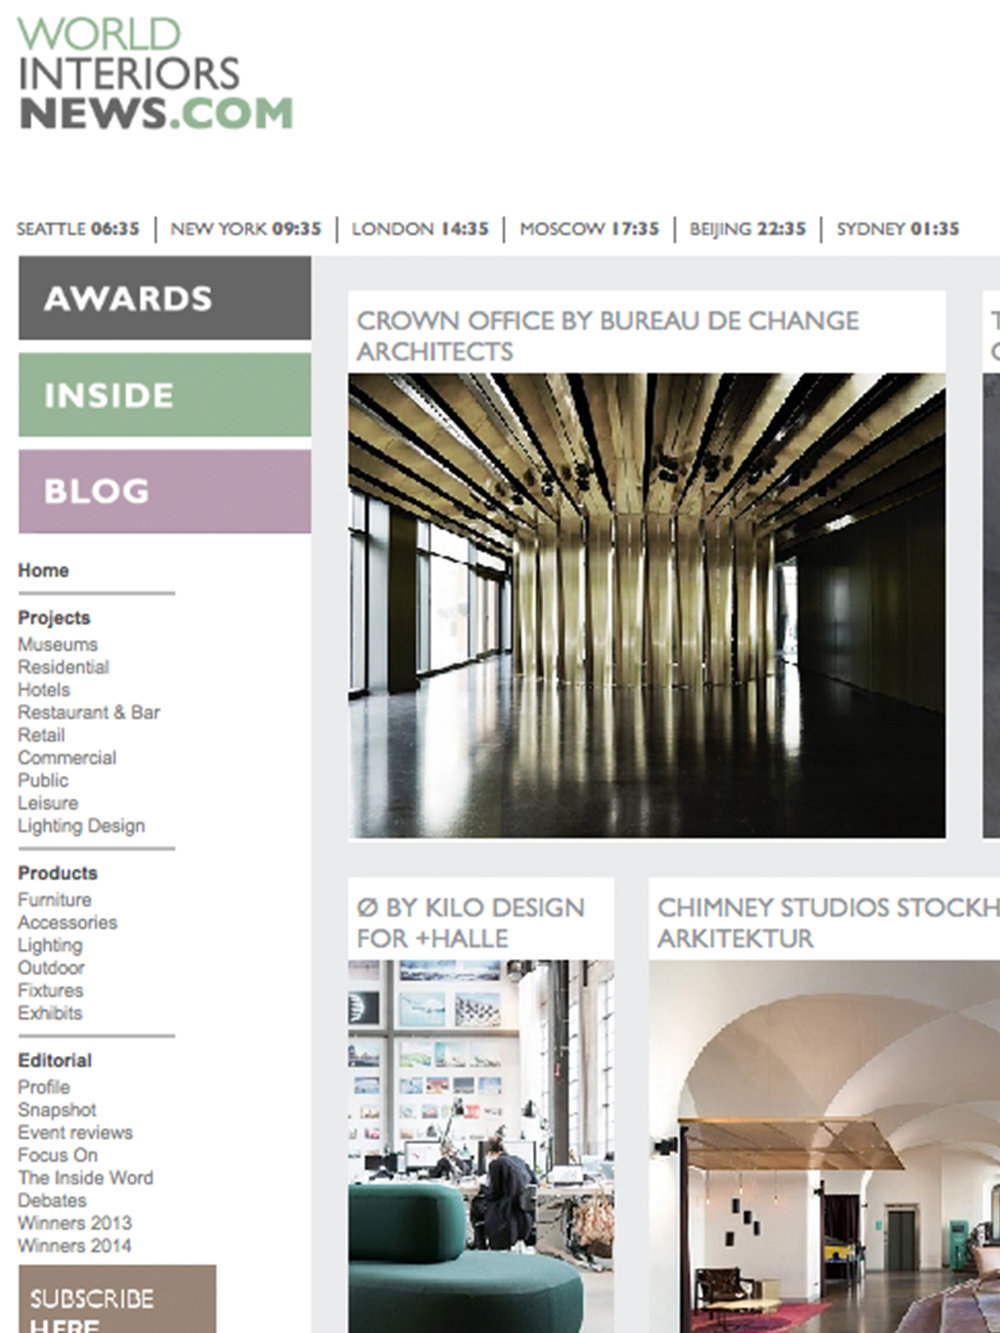 World Interiors News – Jan 16